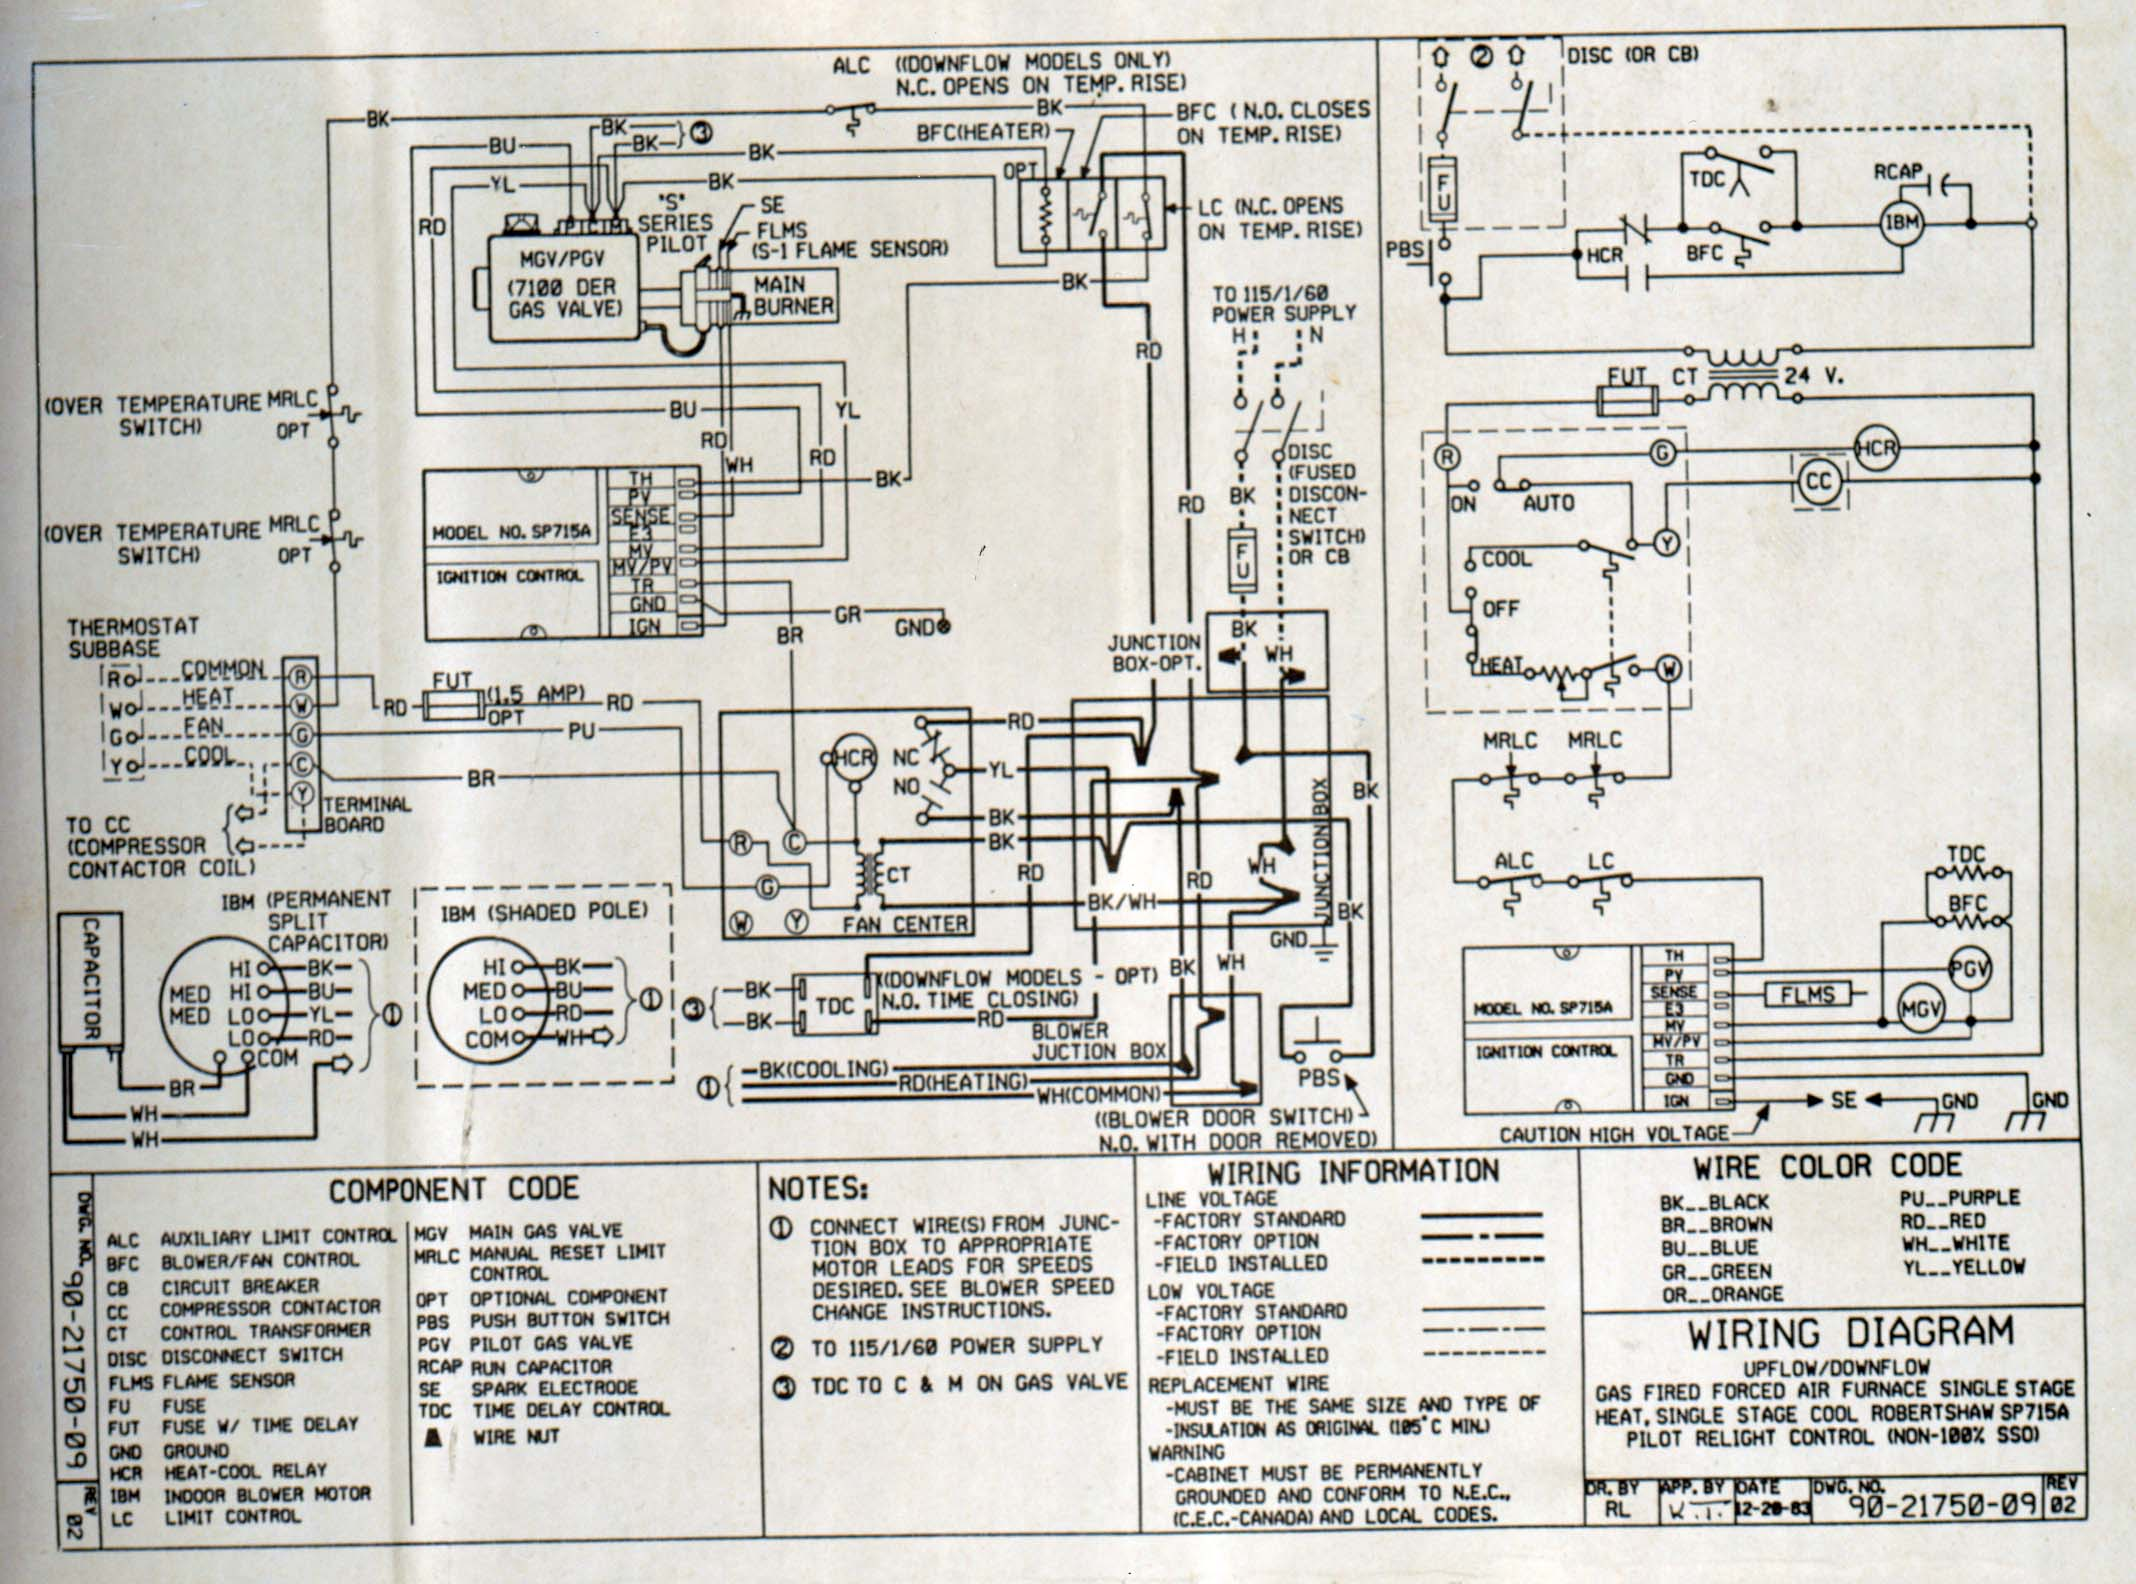 2011 02 27_064544_wiring wiring diagram for goodman blower motor readingrat net goodman package unit wiring diagram at crackthecode.co